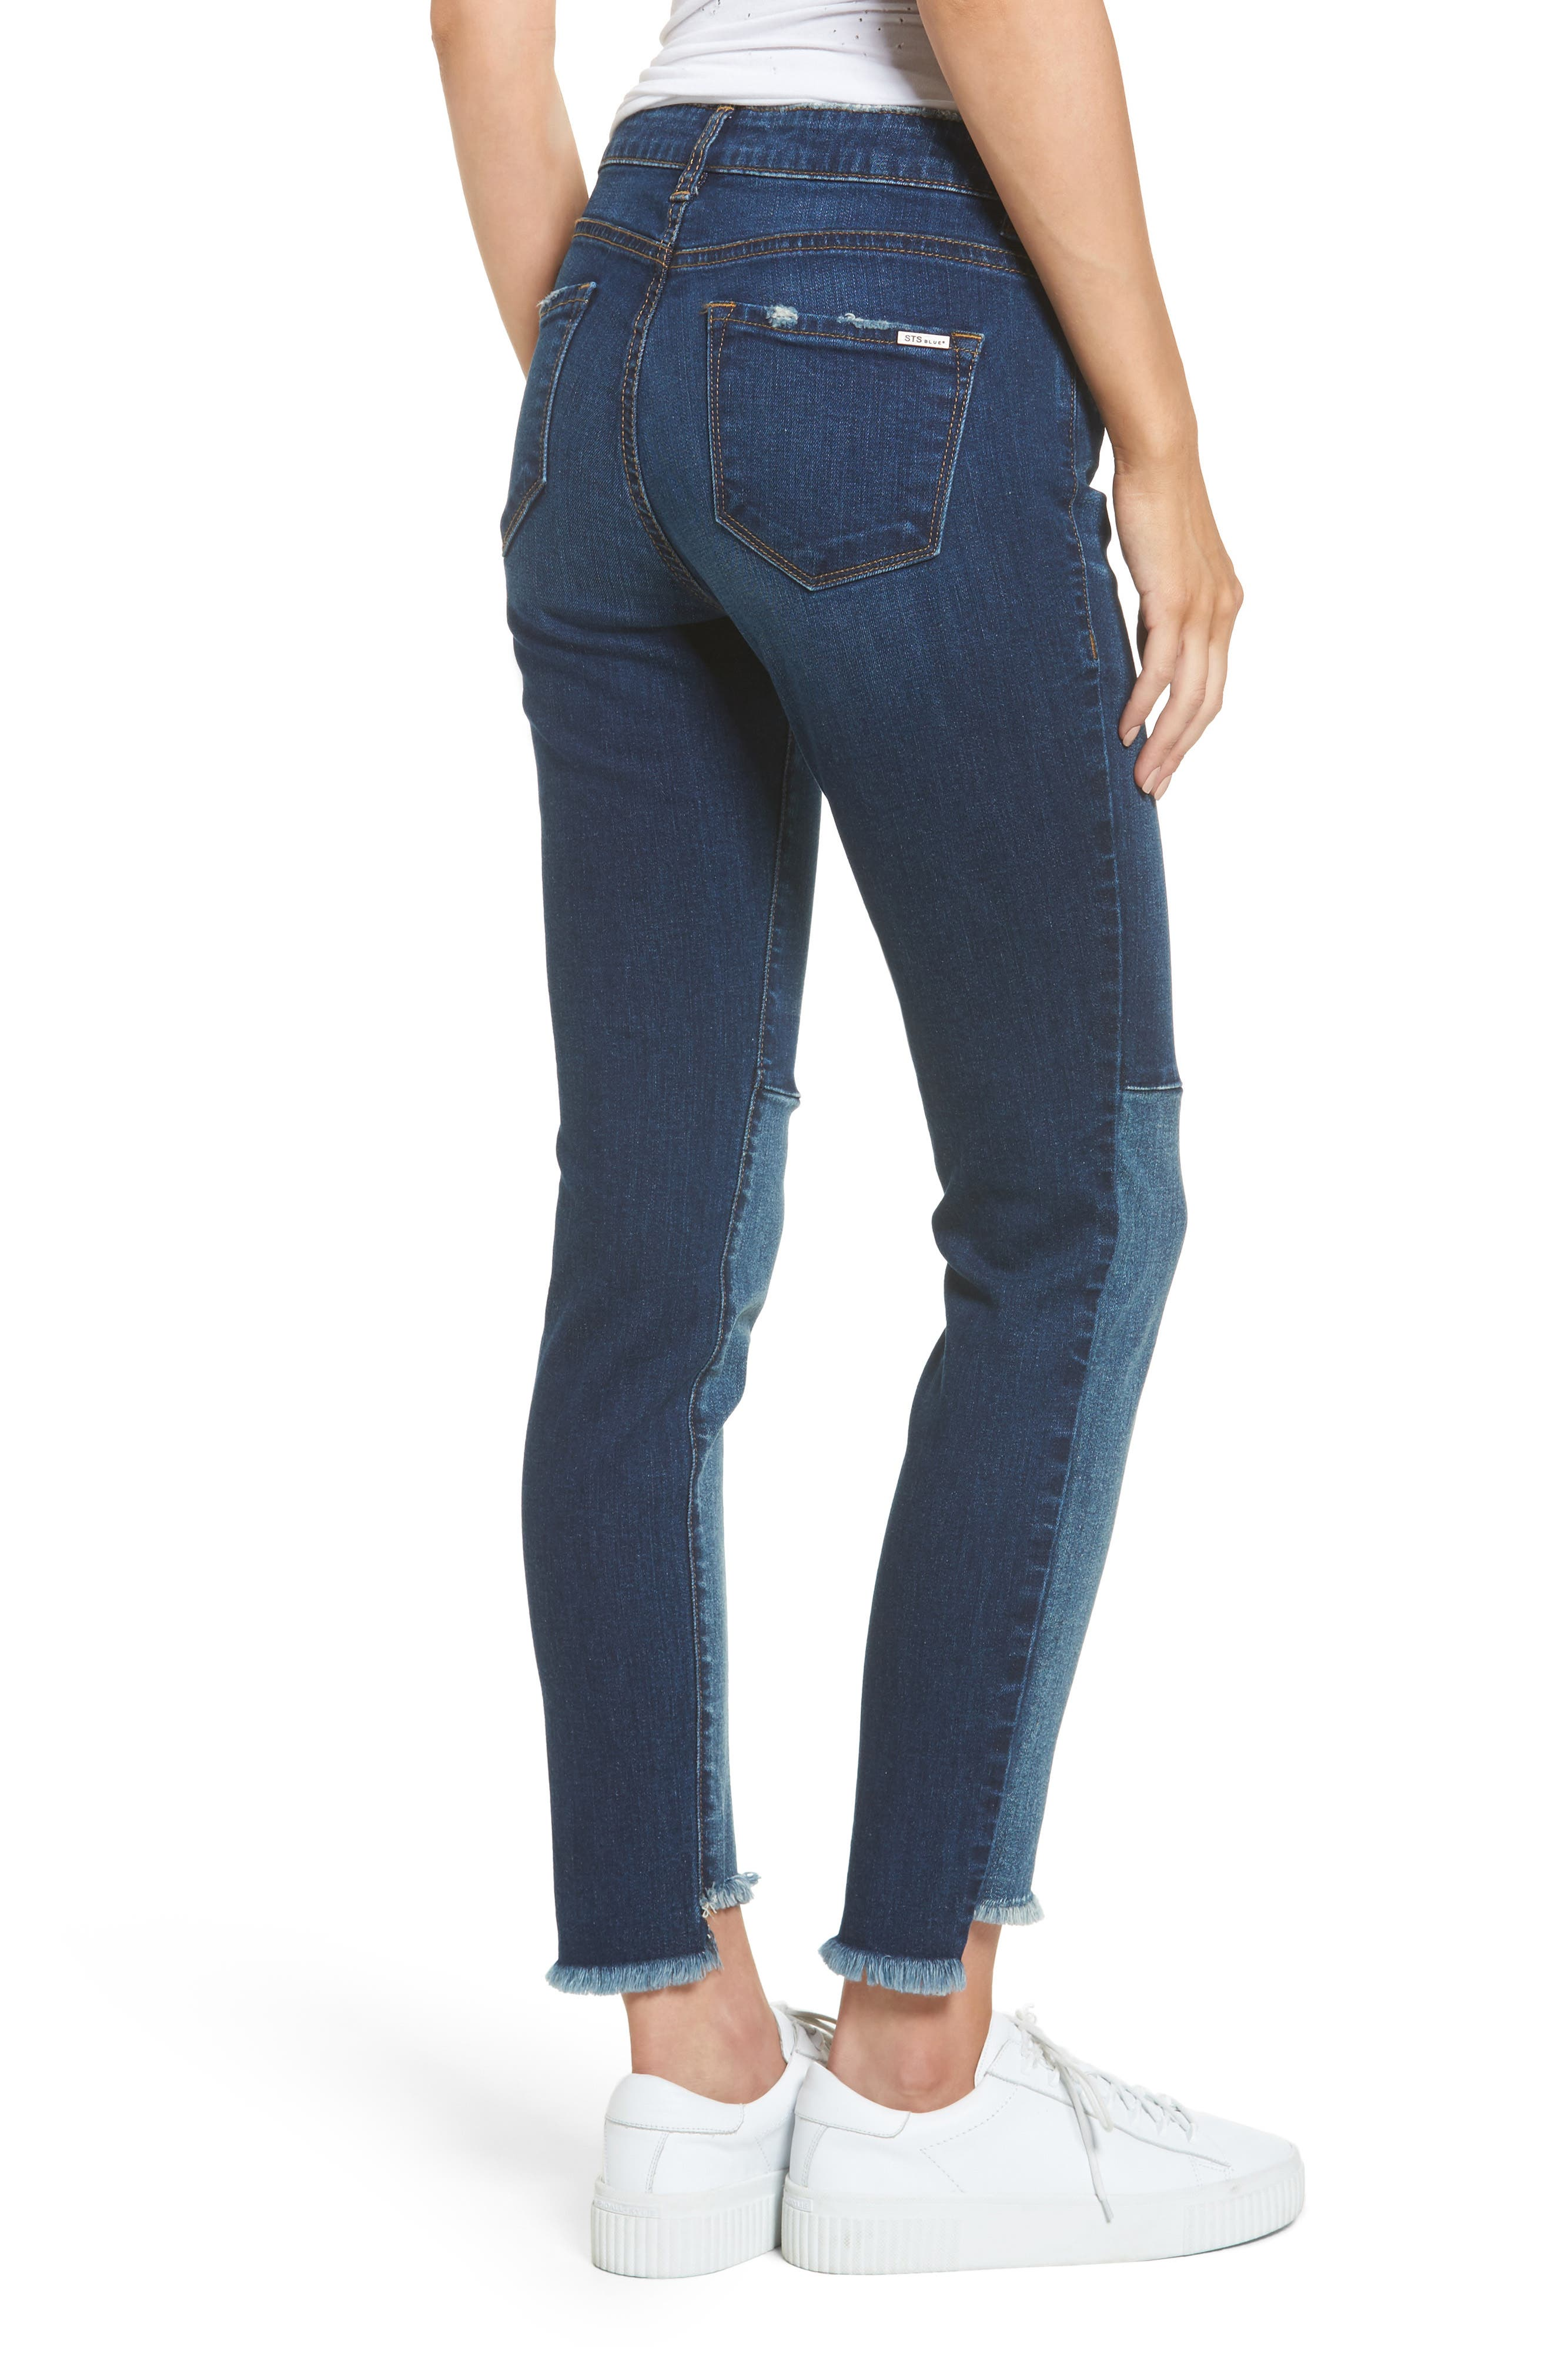 Piper Embroidered Skinny Jeans,                             Alternate thumbnail 2, color,                             Valencia